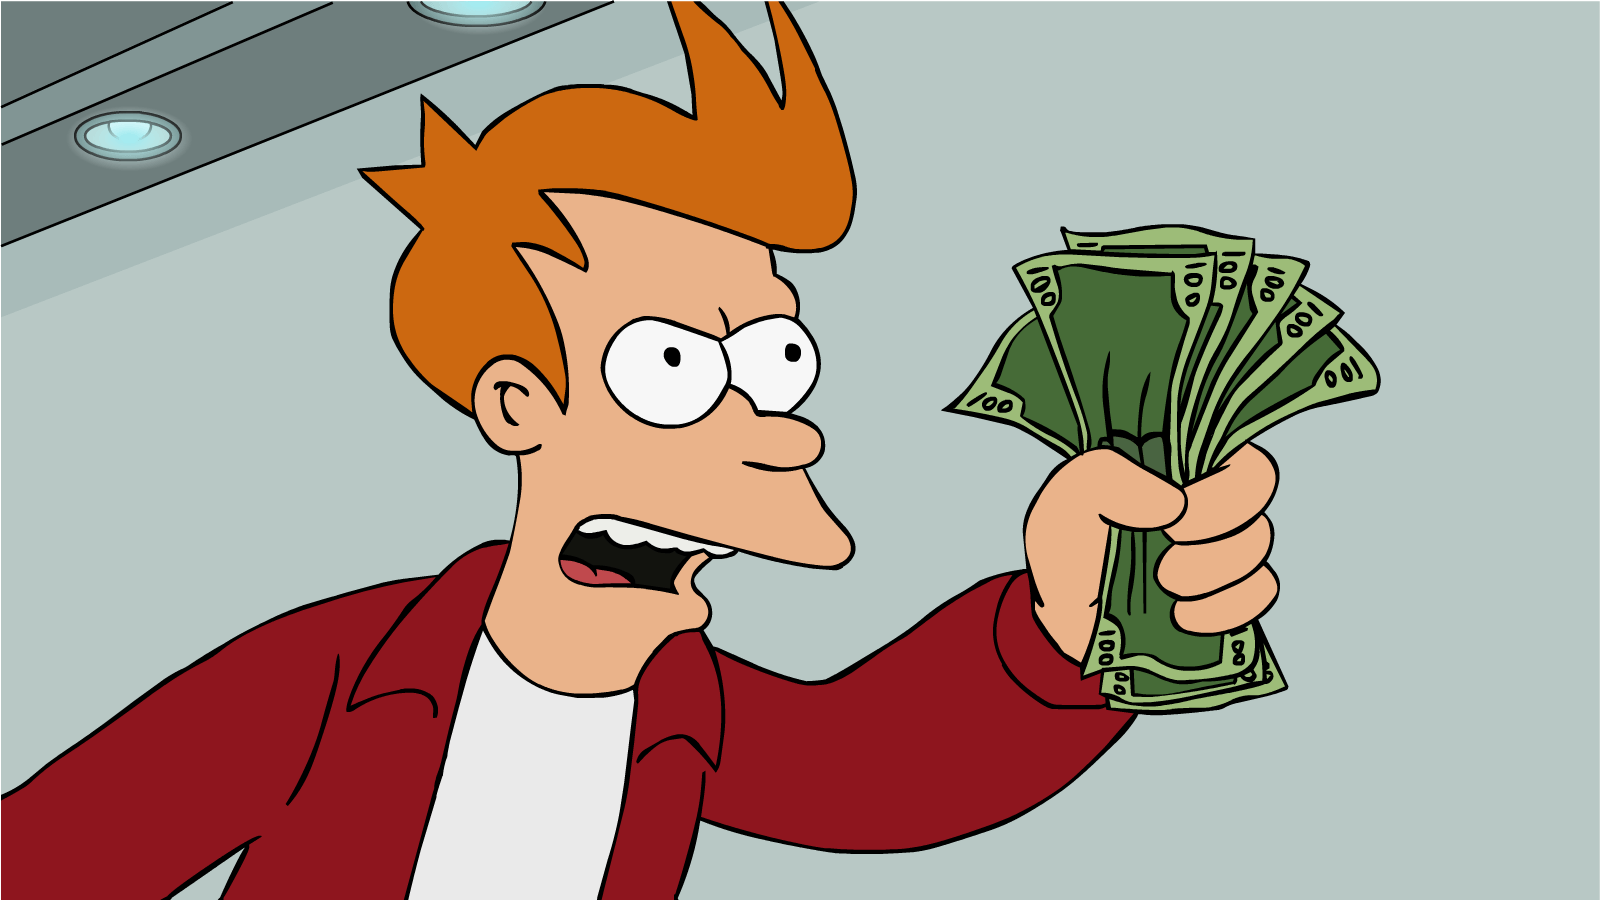 Futurama's Fry desperately searches for a way to start investing his money